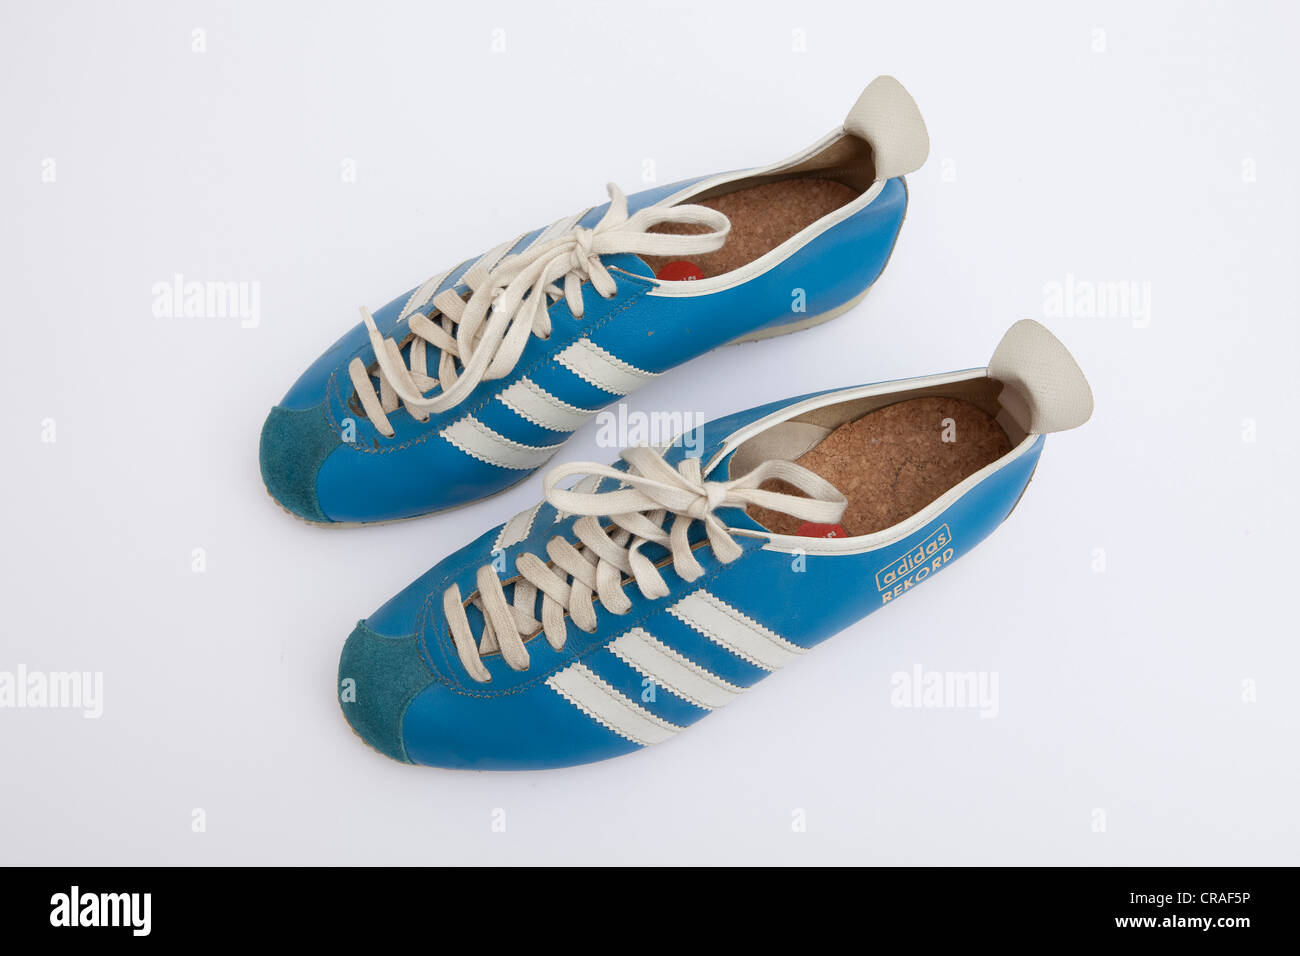 Old Adidas sneakers, Rekord model of the 1960s Stock Photo